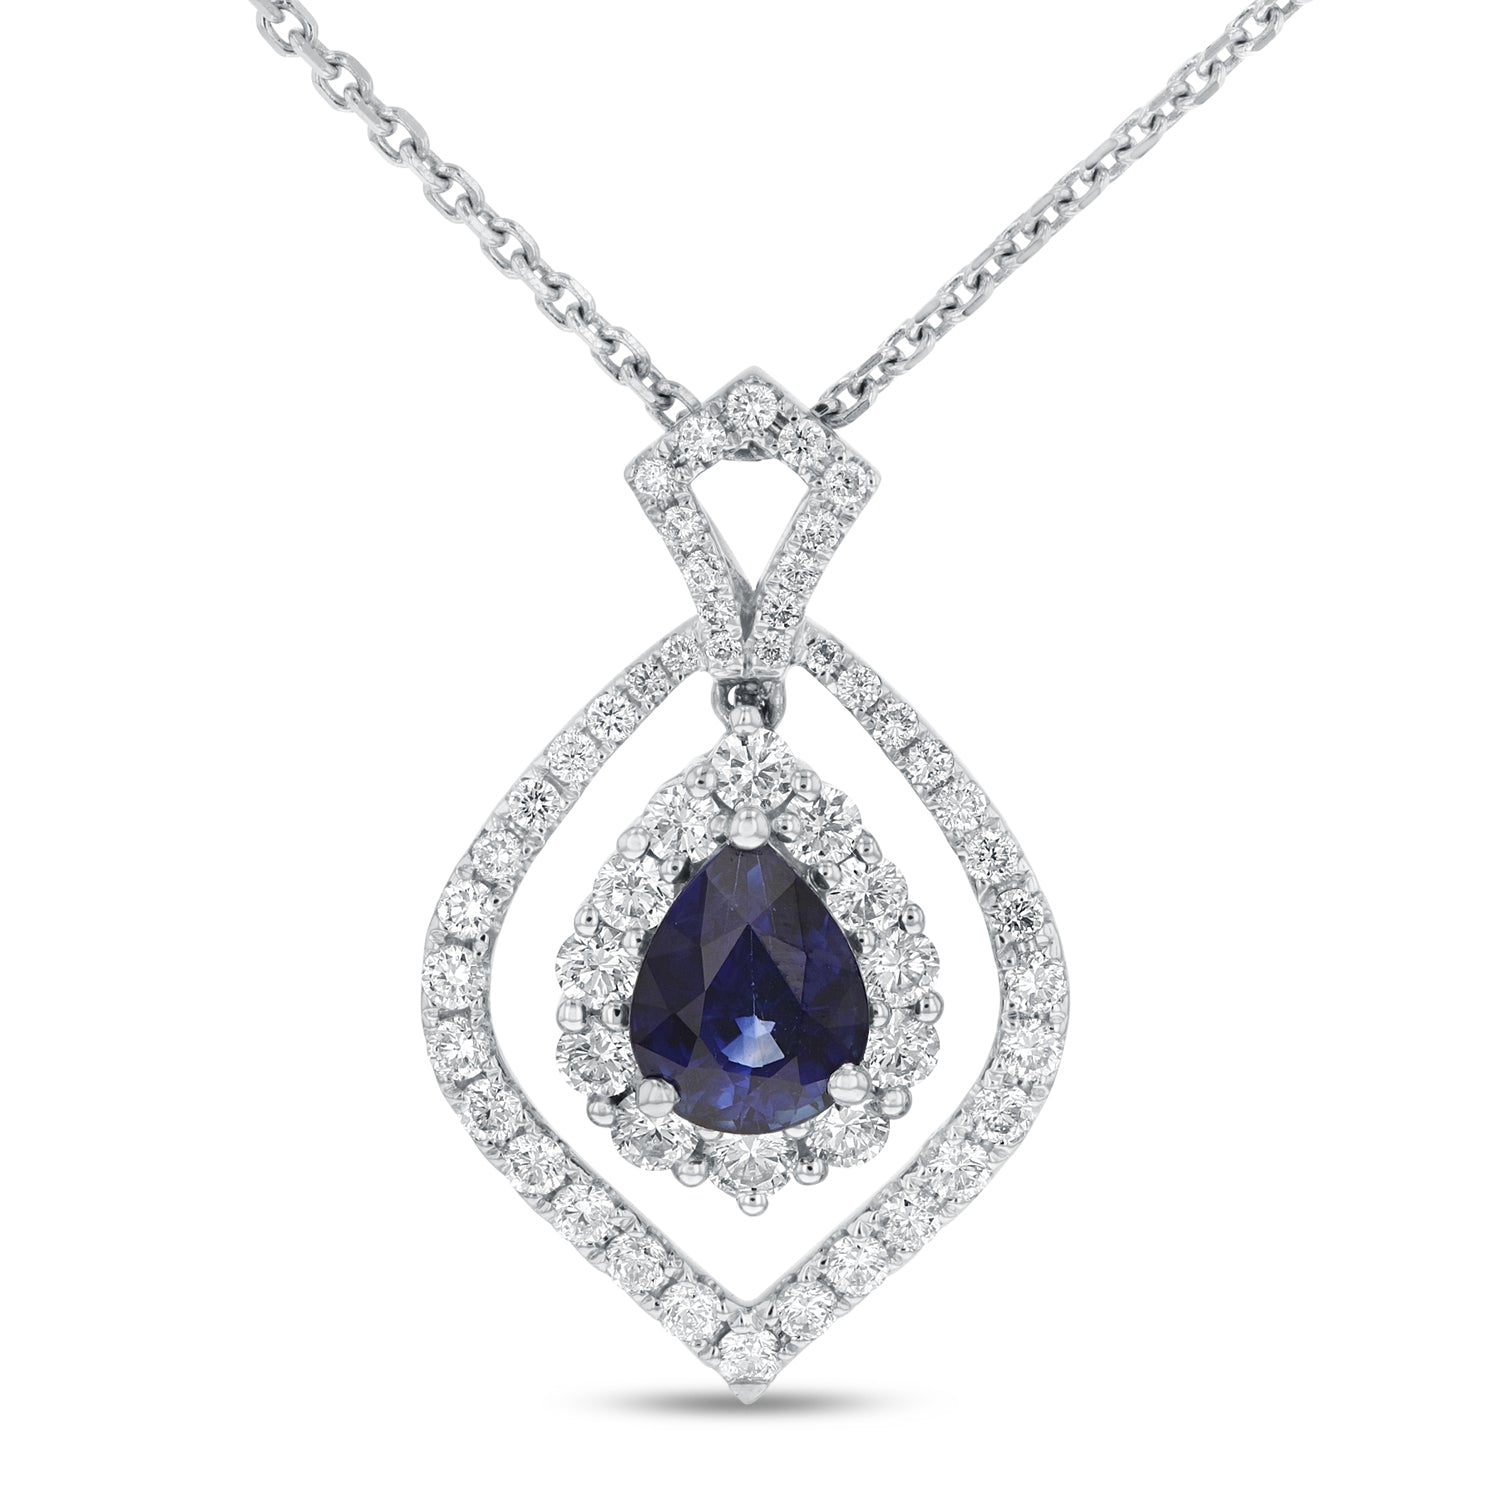 18K White Gold Diamond and Gem Pendant, 2.36 Carats